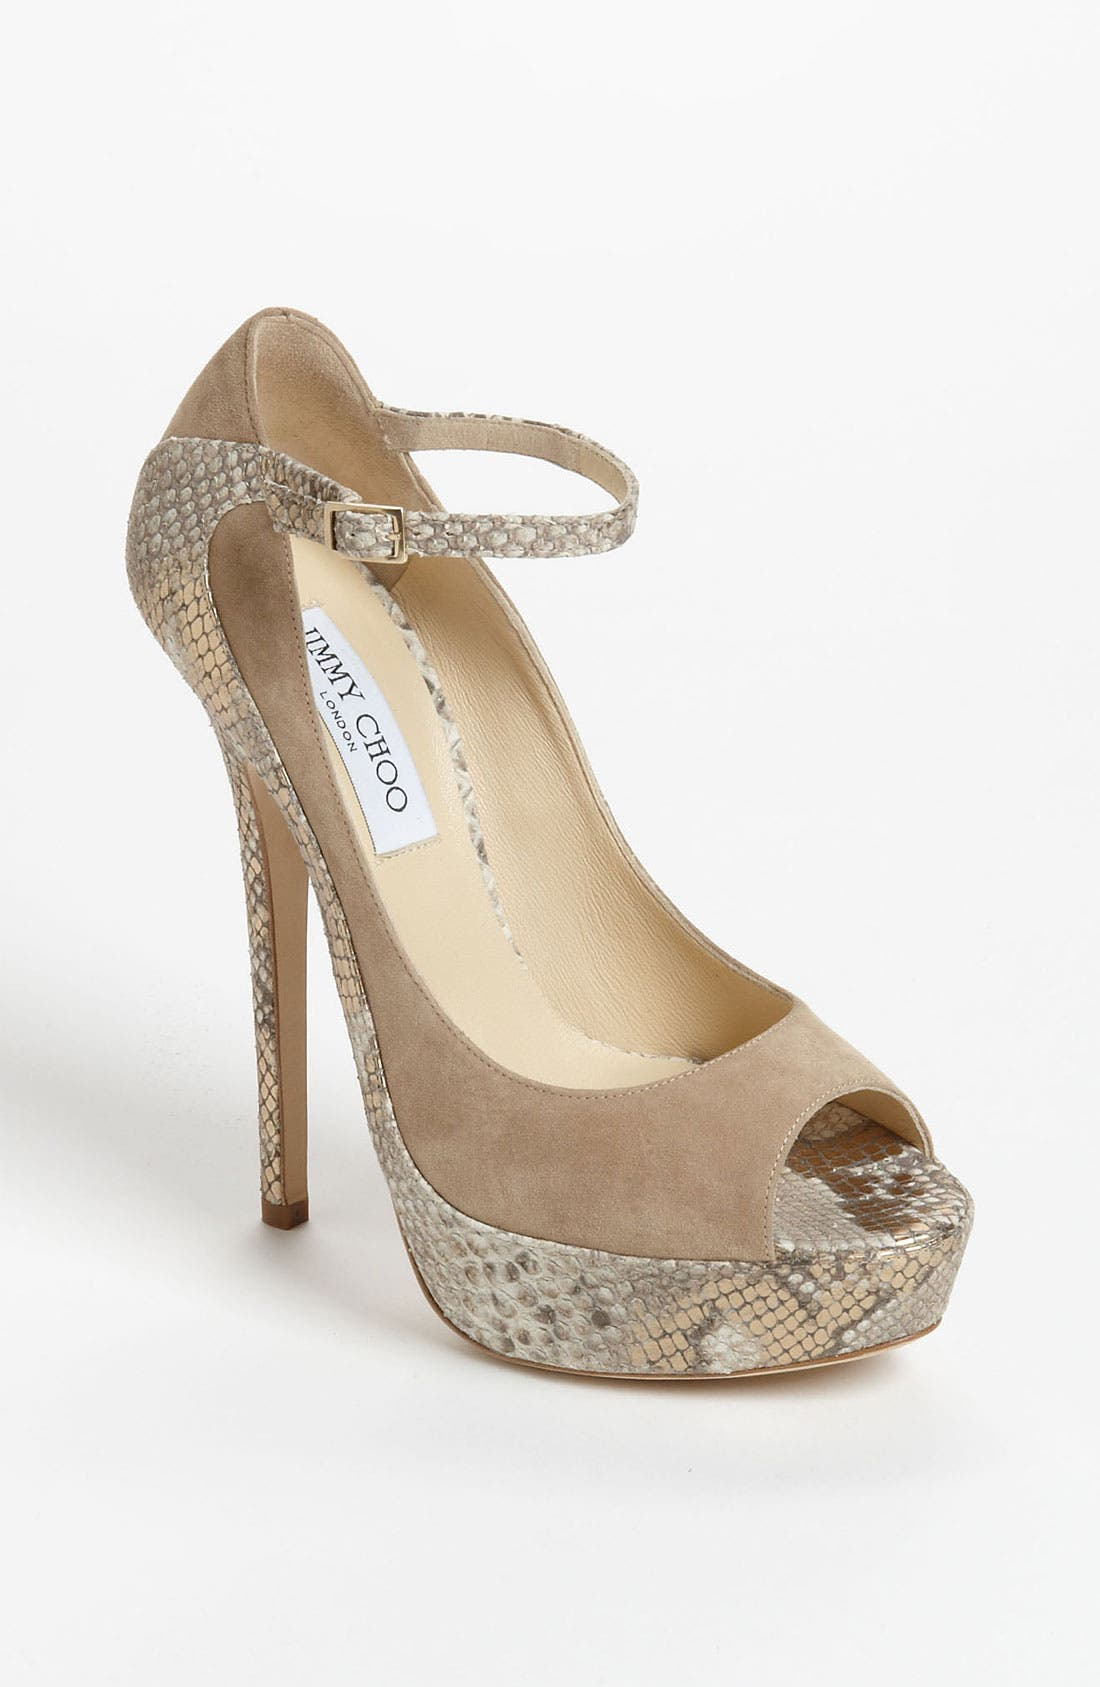 Alternate Image 1 Selected - Jimmy Choo 'Tali' Pump